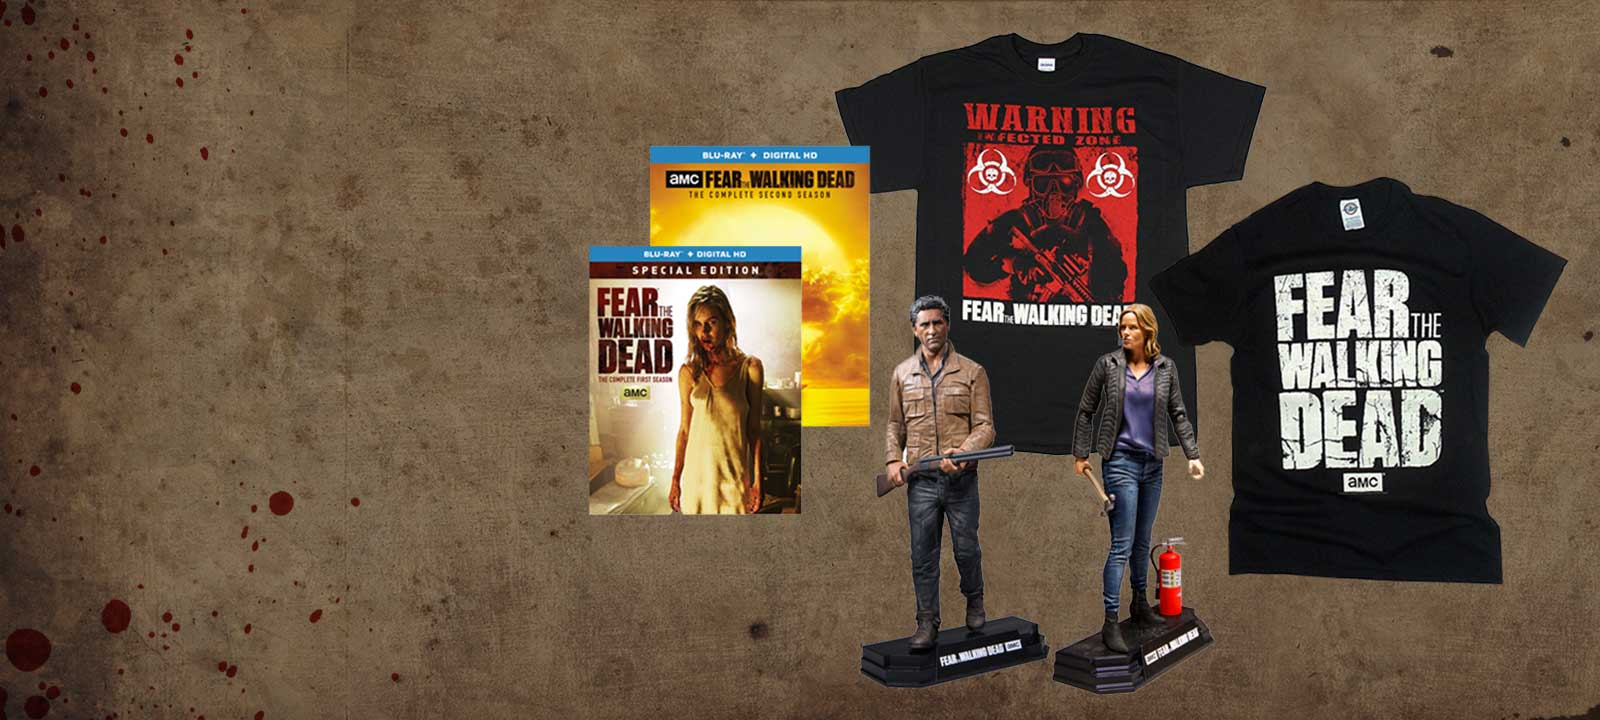 fear-the-walking-dead-shop-800×600-1